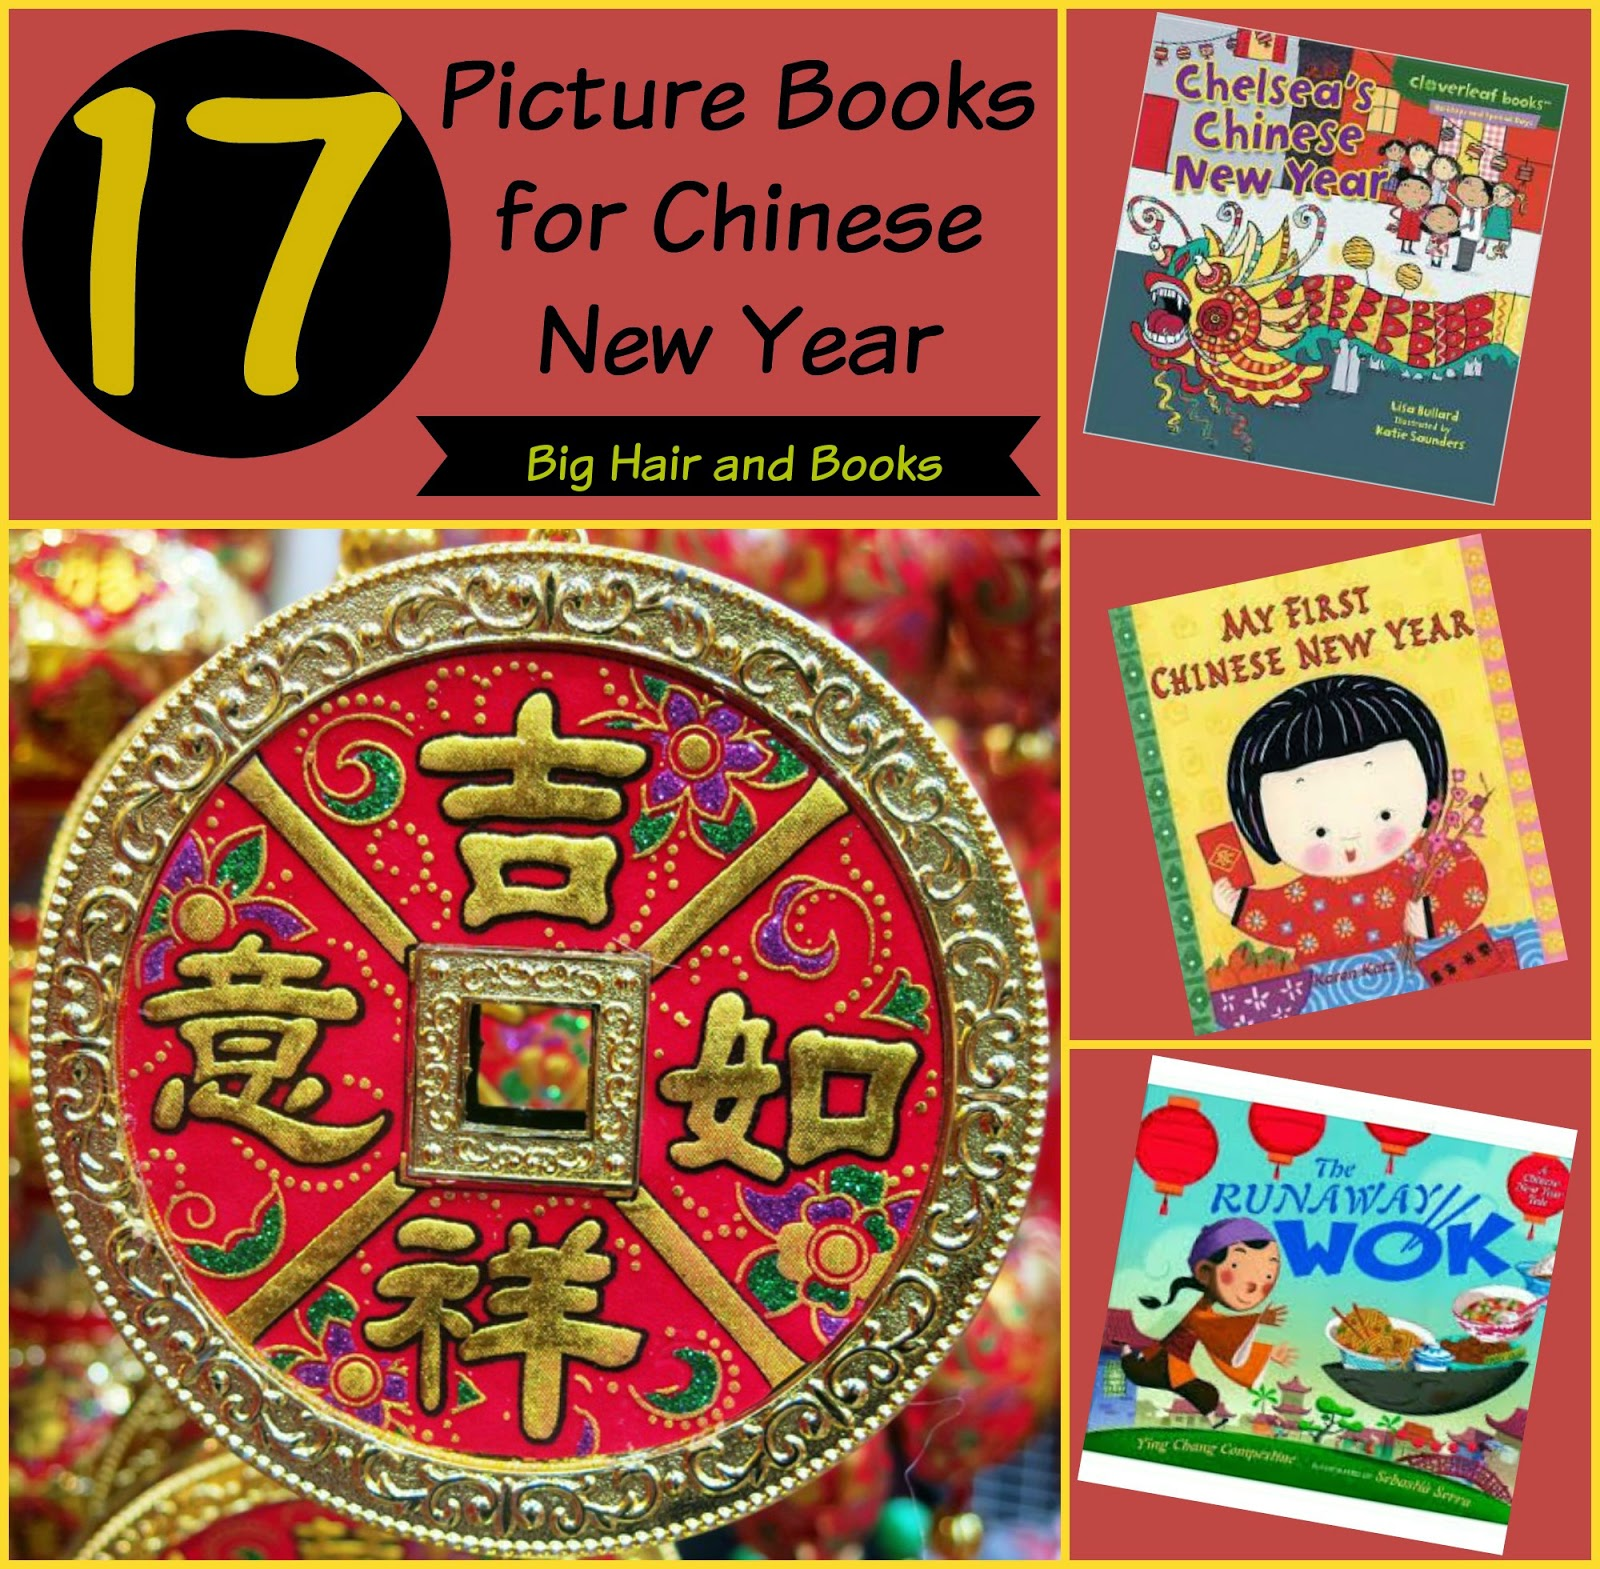 17 Picture Books for Chinese New Year from Big Hair and Books